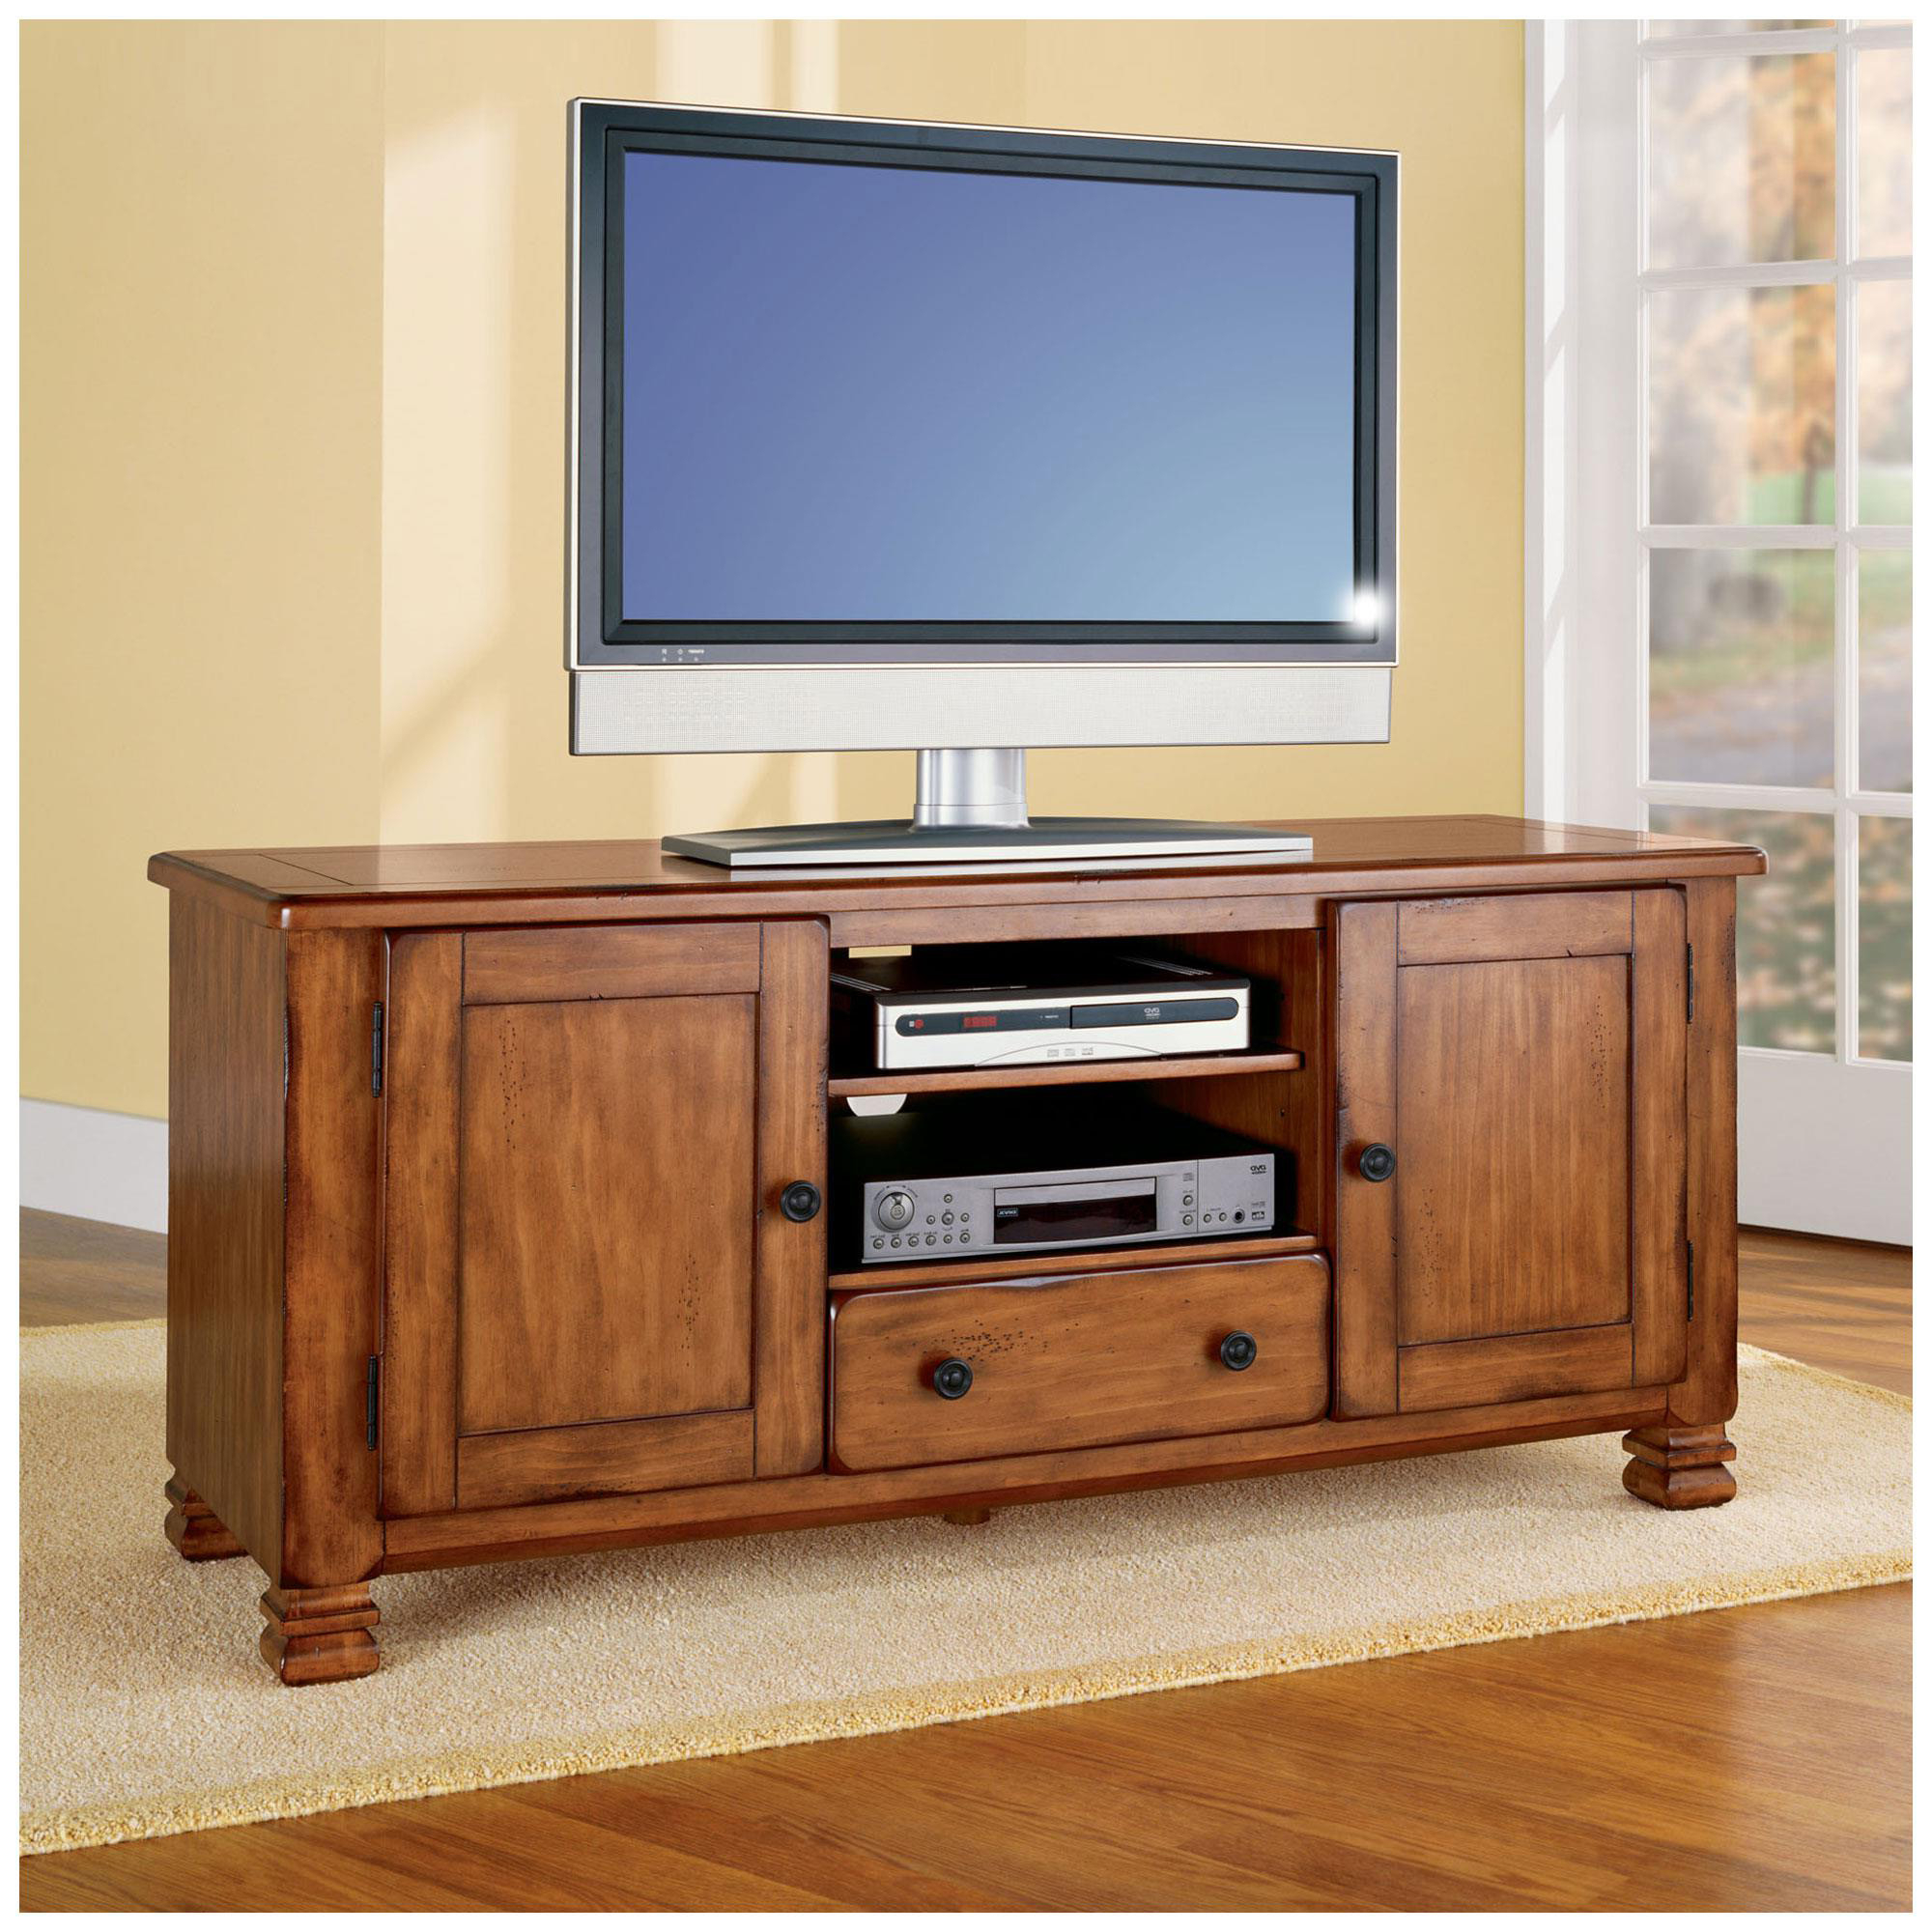 Amish Corner Tv Stand Solid Wood Console Mission Style Stands For Throughout Favorite Solid Oak Tv Stands (Gallery 10 of 20)